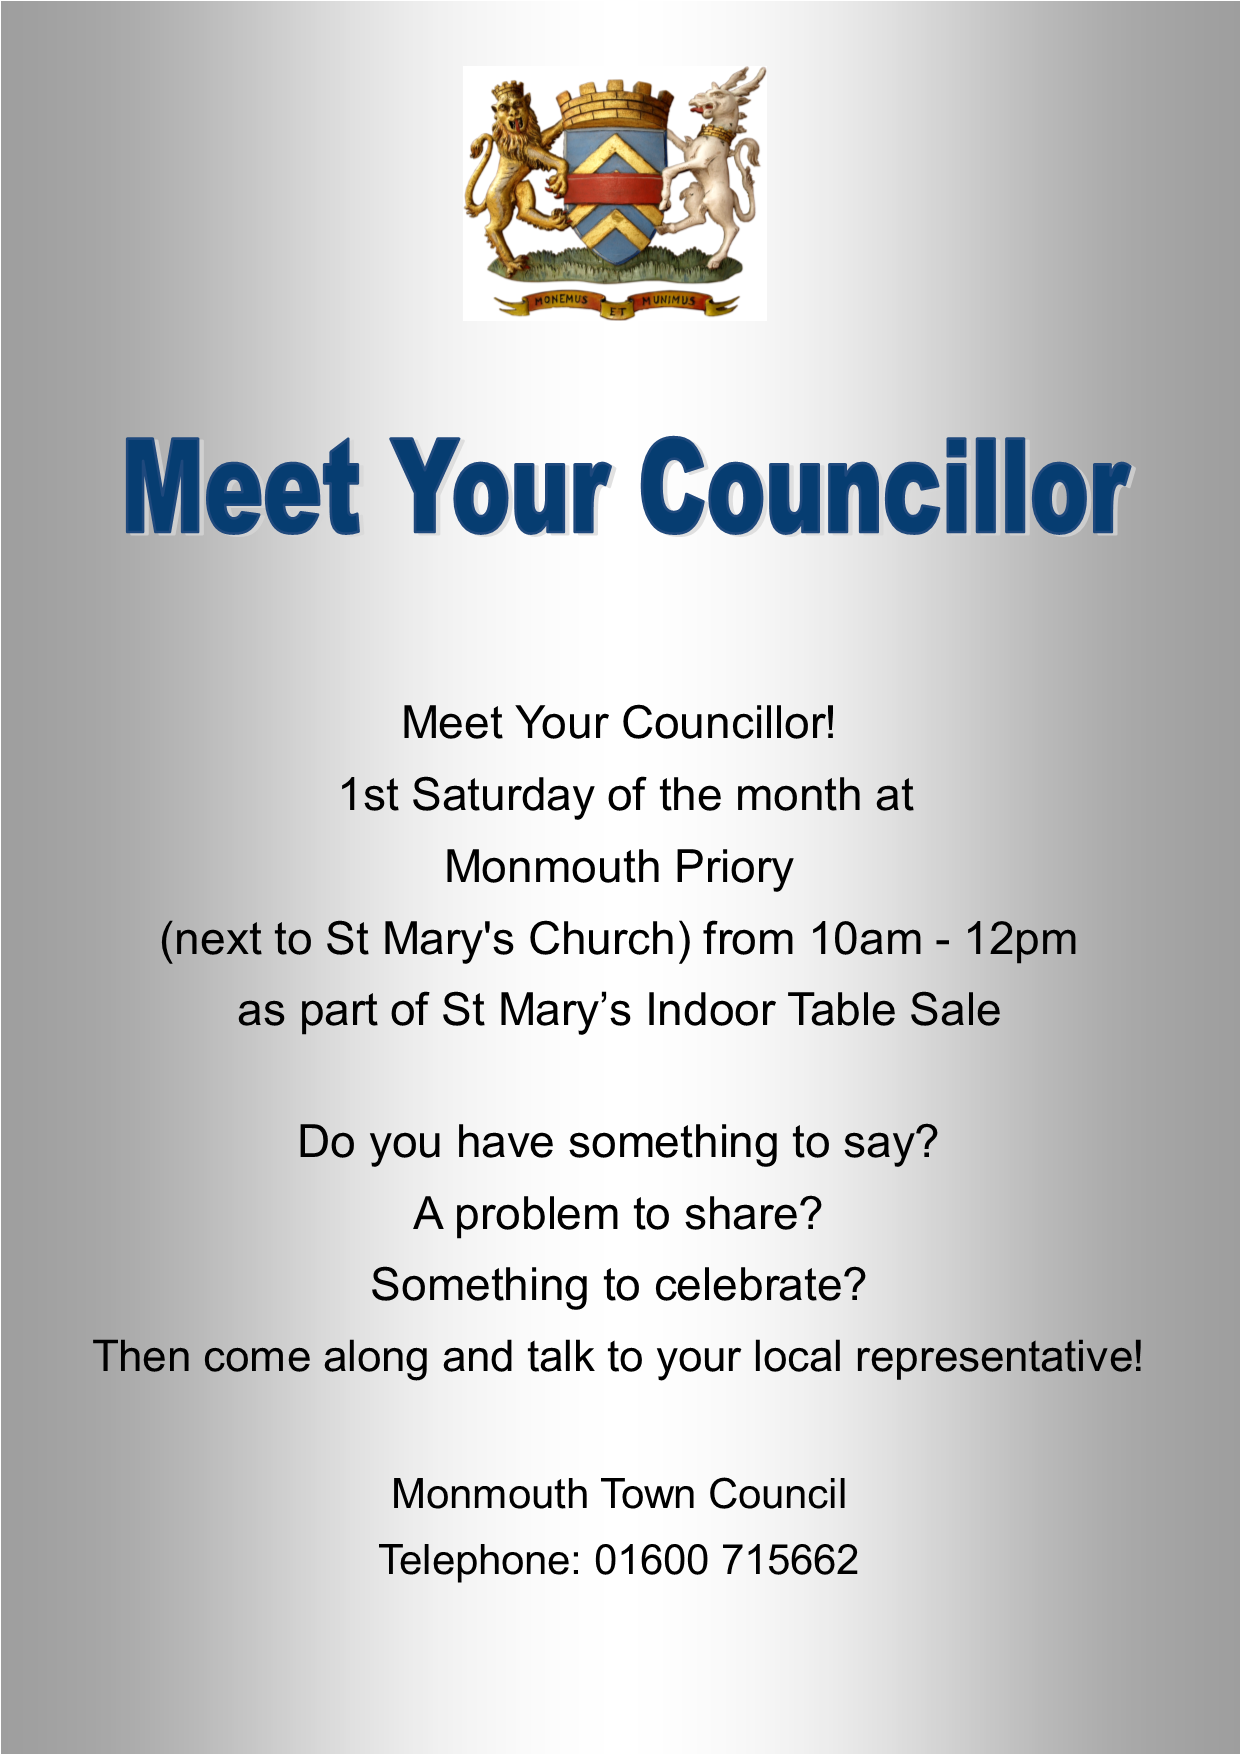 Meet Your Councillor Poster.jpg